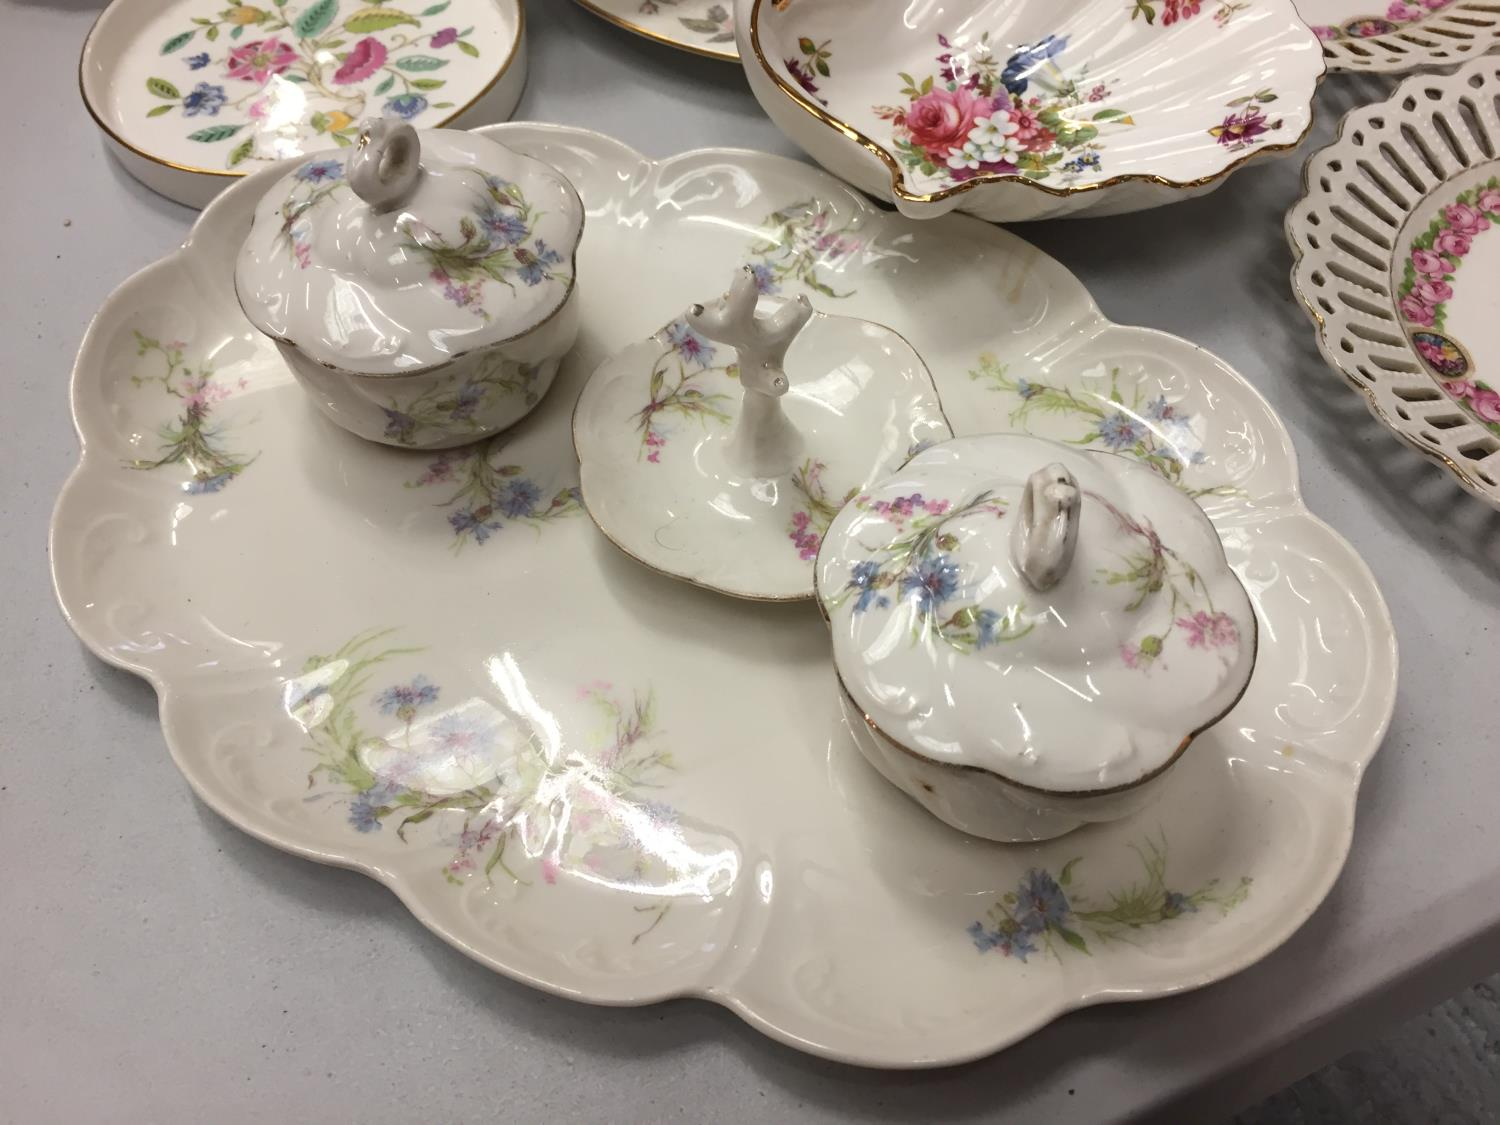 A MIXED COLLECTION TO INCLUDE SPODE AND MINTON TRINKET DISHES , A DRESSING TABLE SET OF FLOWER - Image 2 of 6